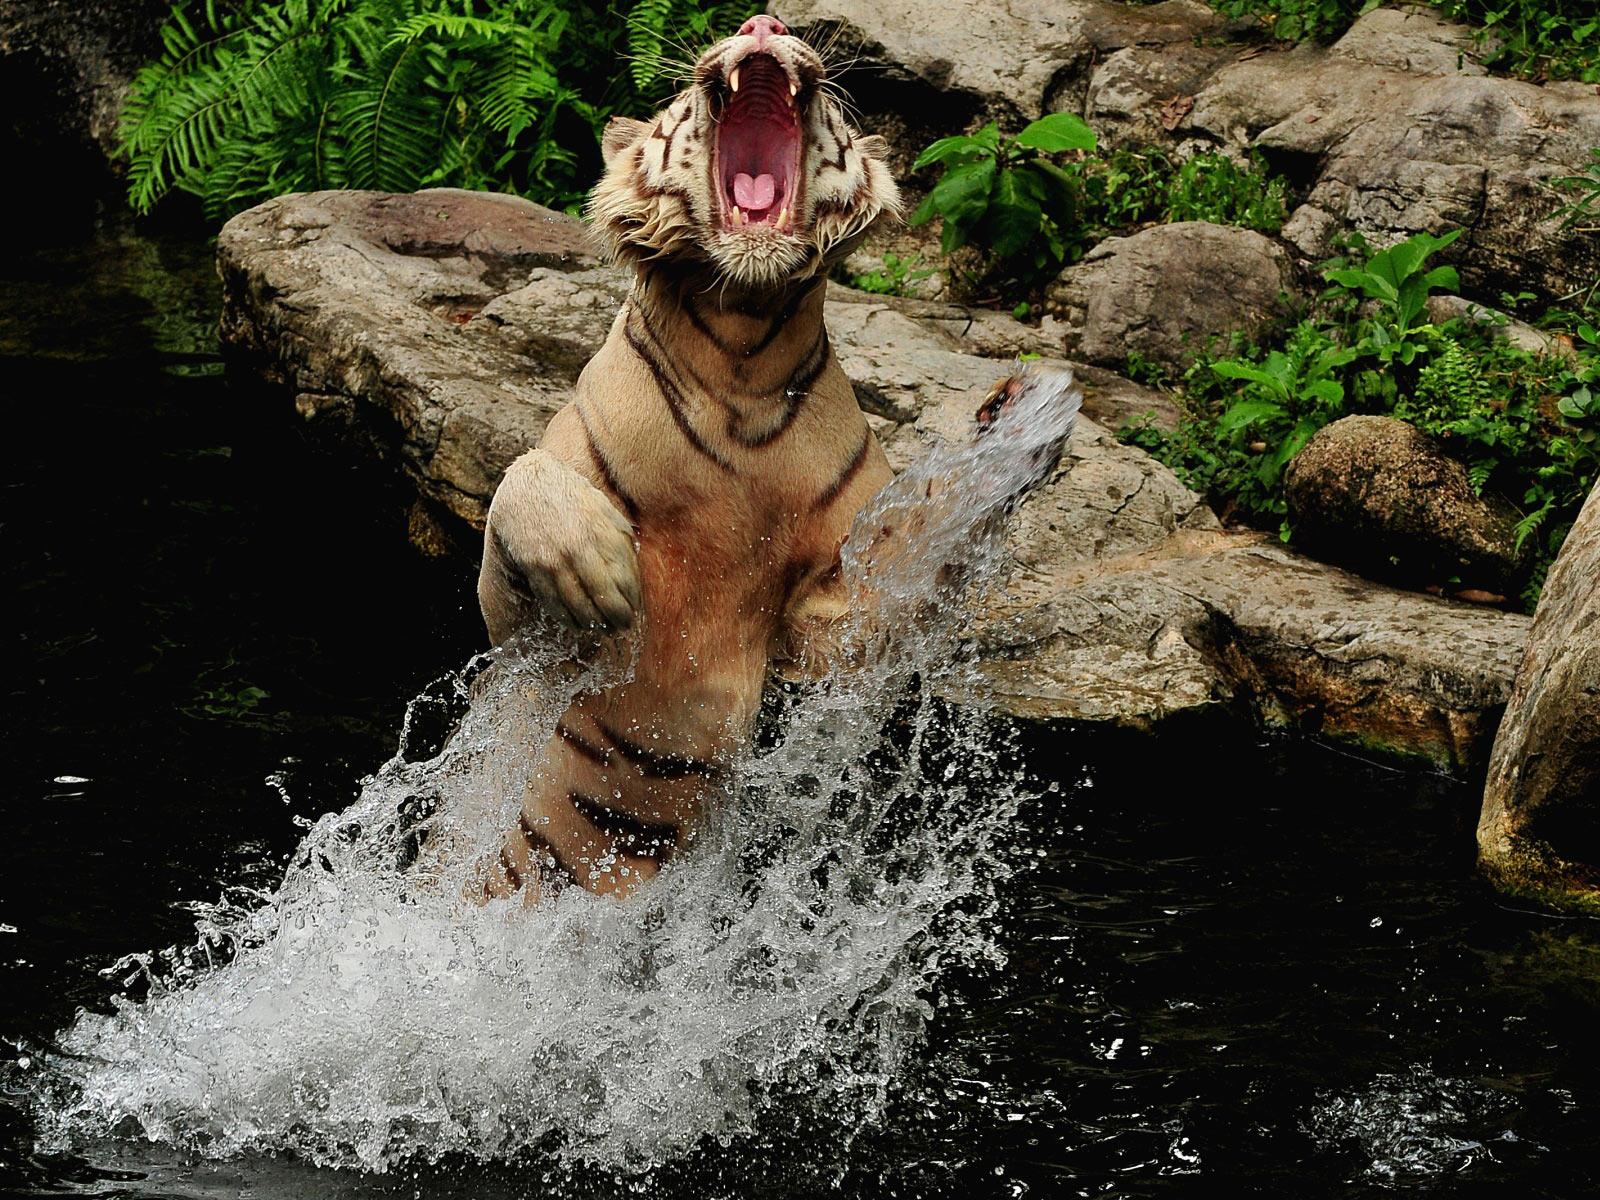 Roaring Splash tiger images